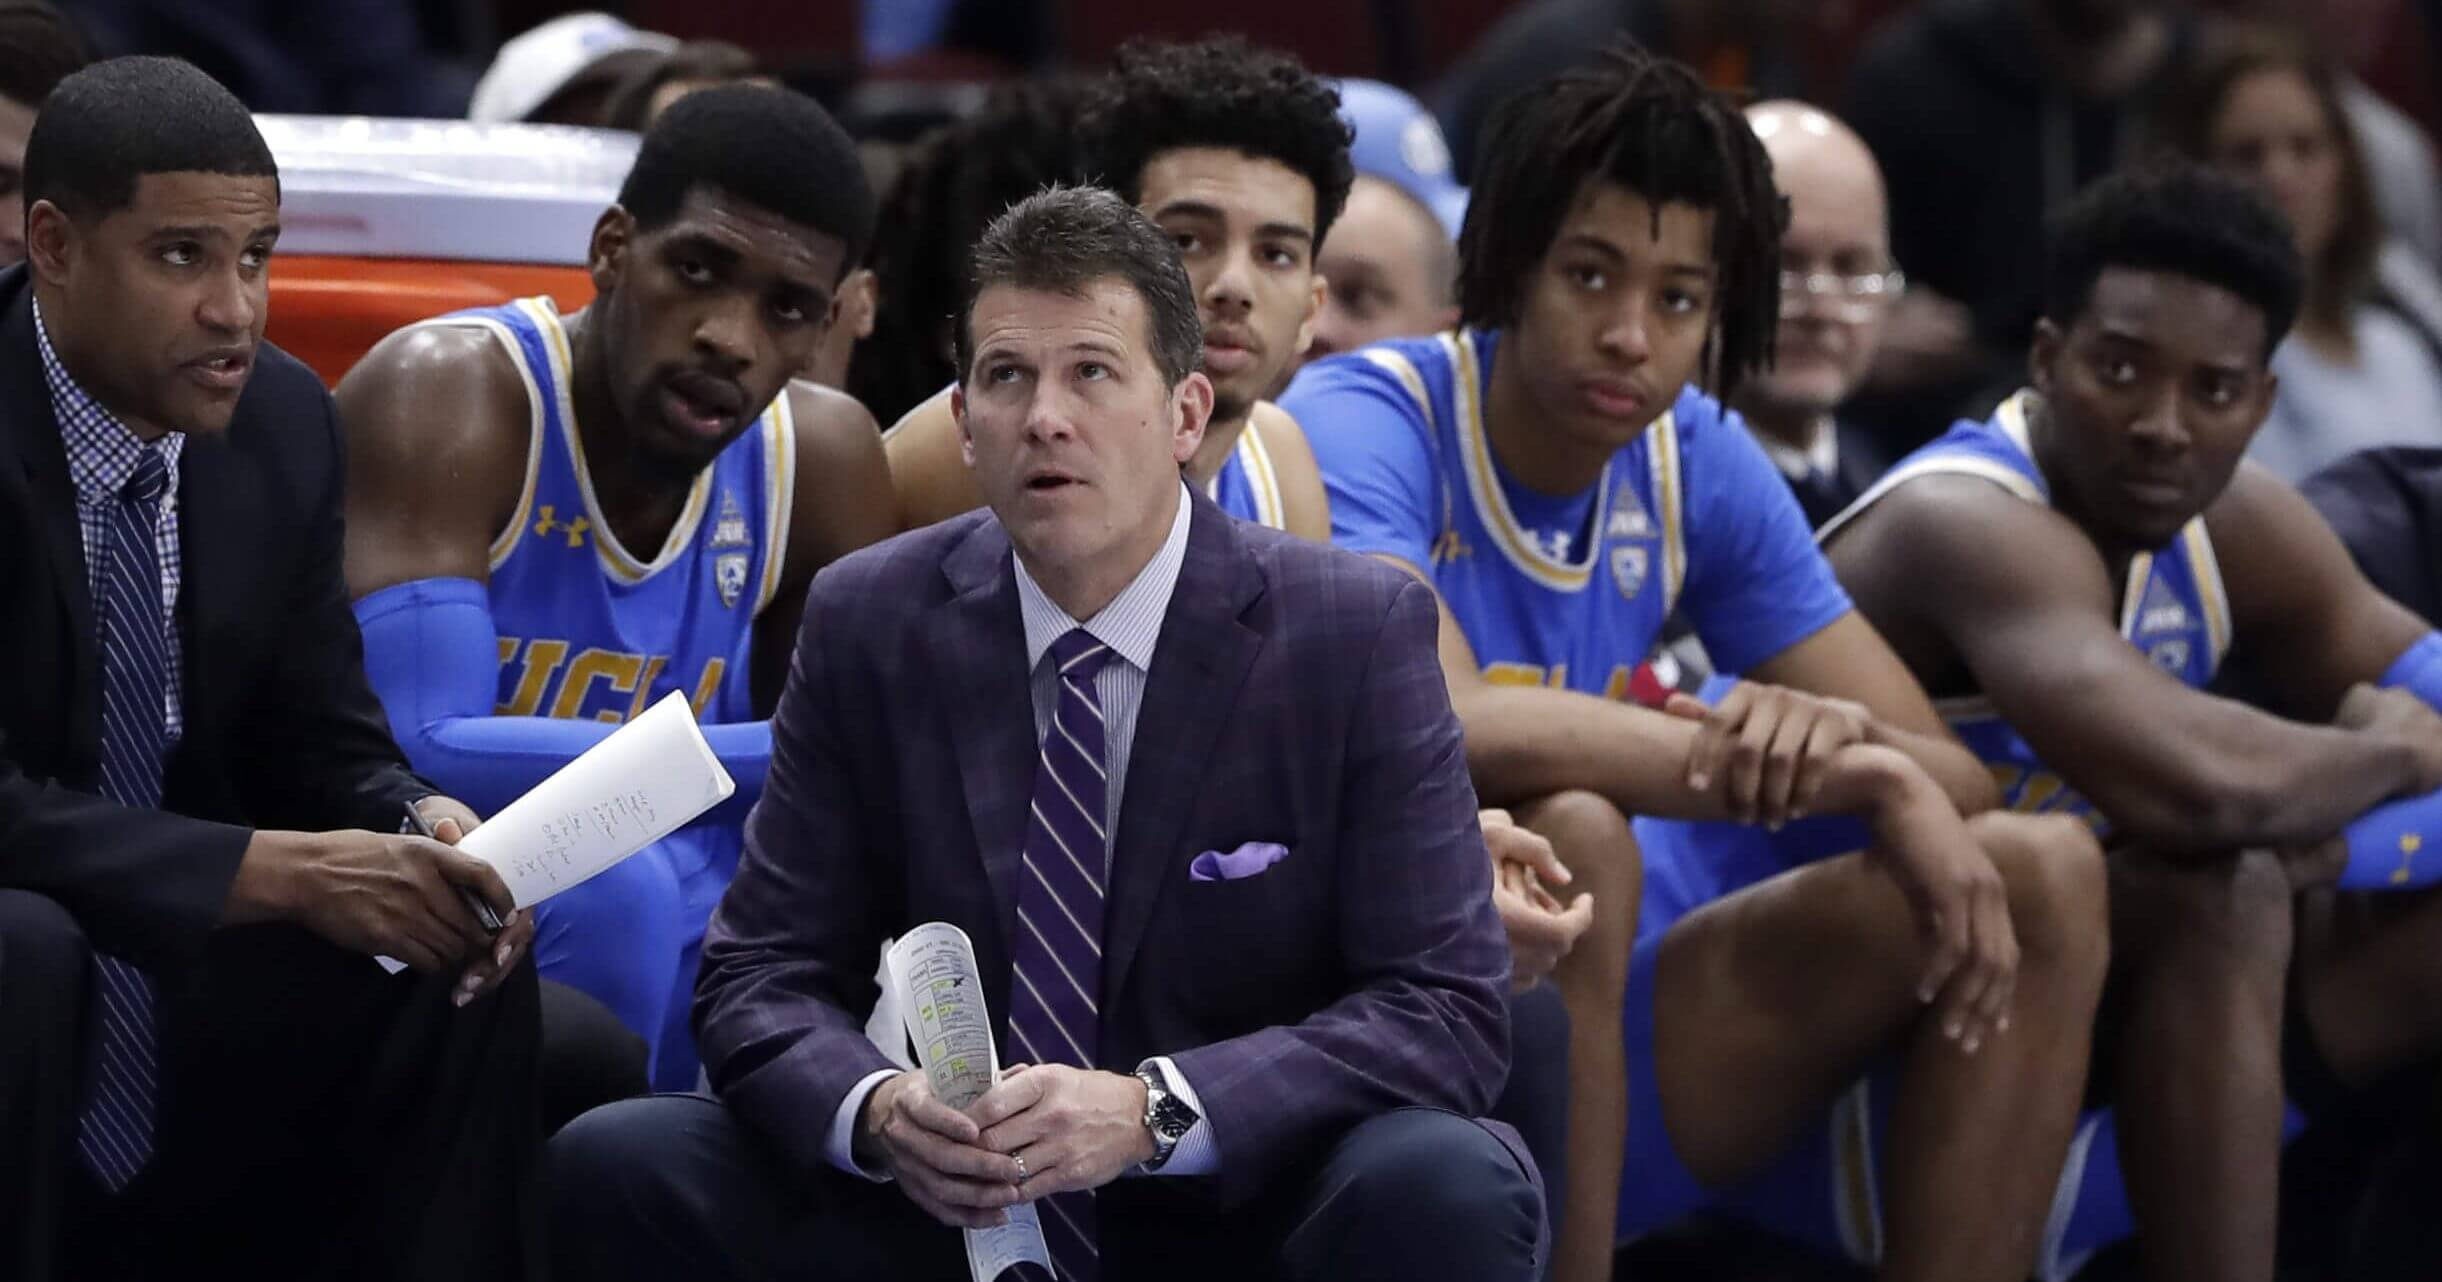 Coach Steve Alford and UCLA players watch during the second half of a game against Ohio State on Dec. 22.